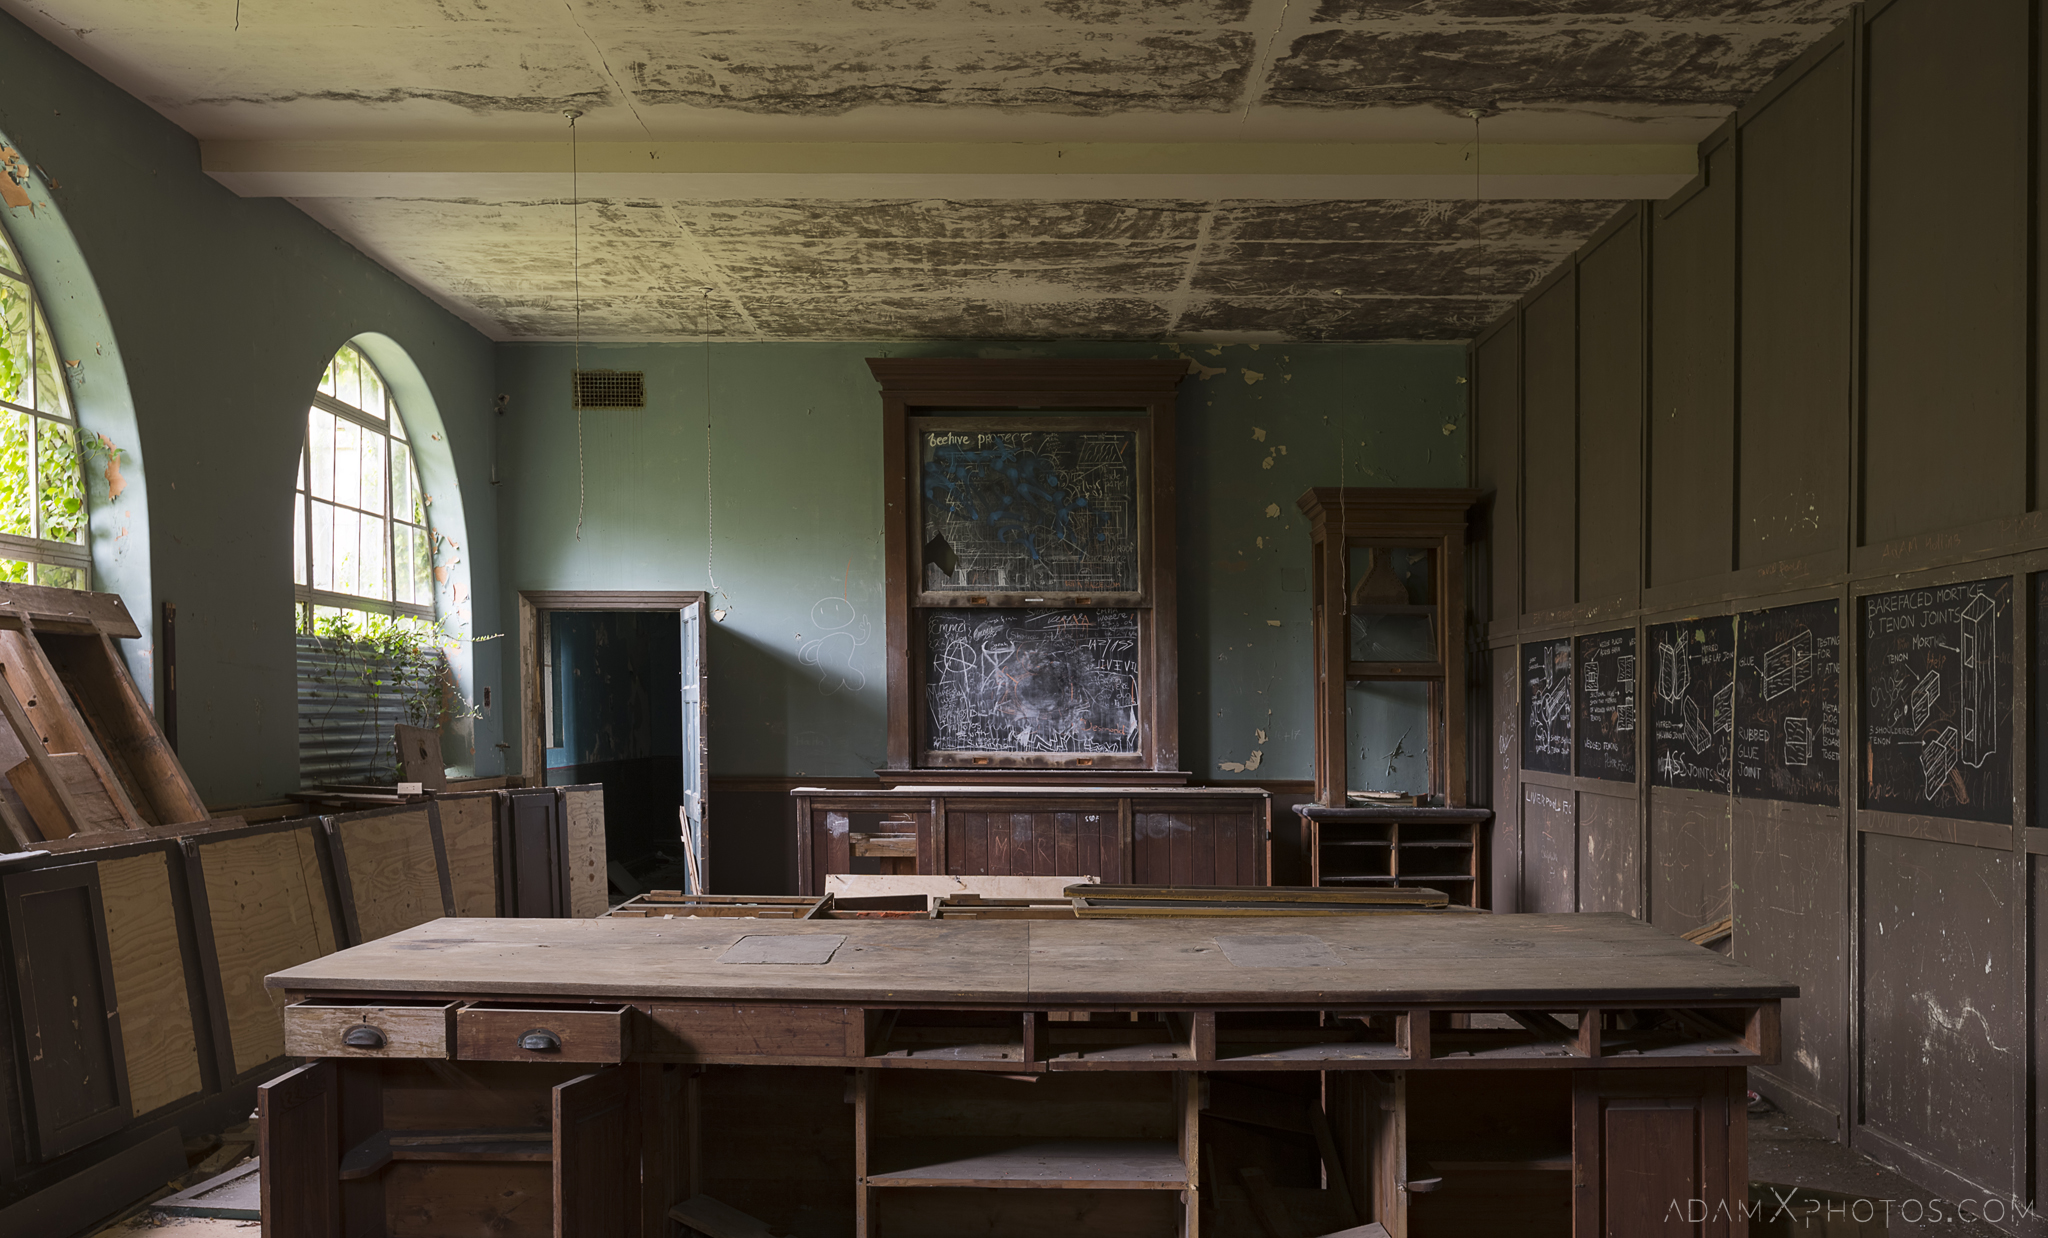 Old classroom blackboard desks De Salle College School Colaiste Iosagain Ballyvourney County Cork Adam X Urbex Urban Exploration Ireland Access 2017 Abandoned decay lost forgotten derelict location creepy haunting eerie